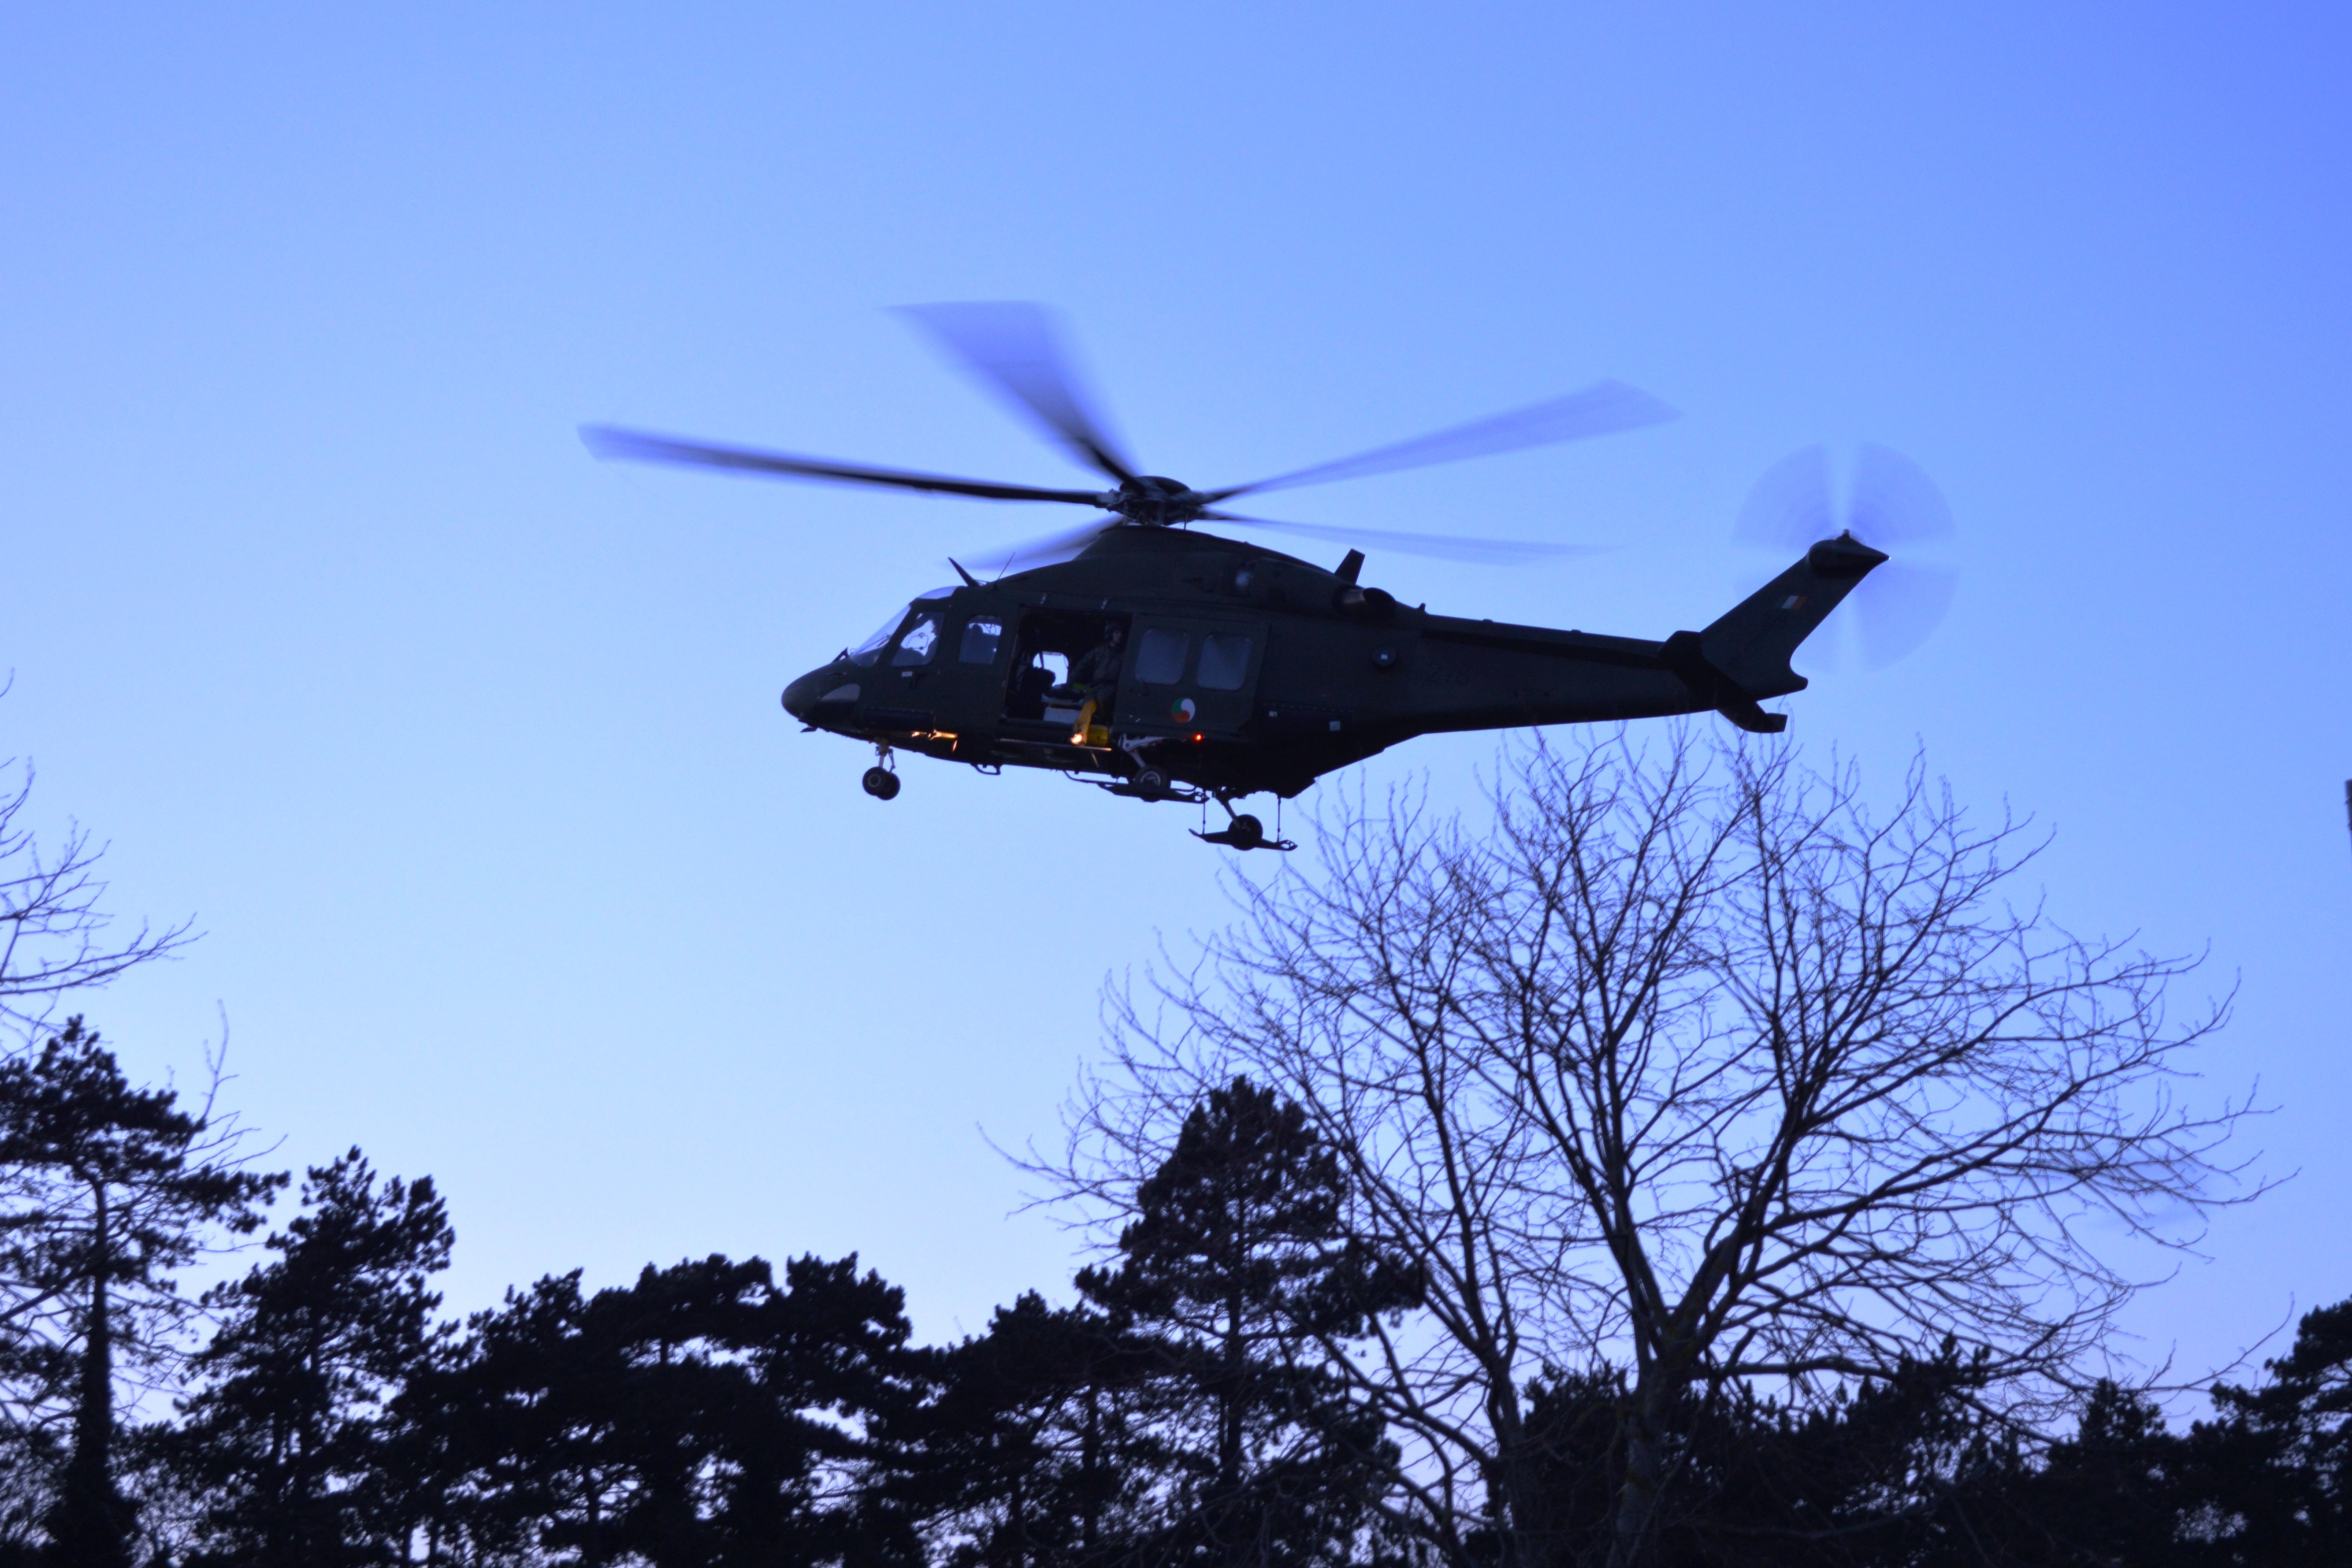 Helicopter 10 Feb 14 014